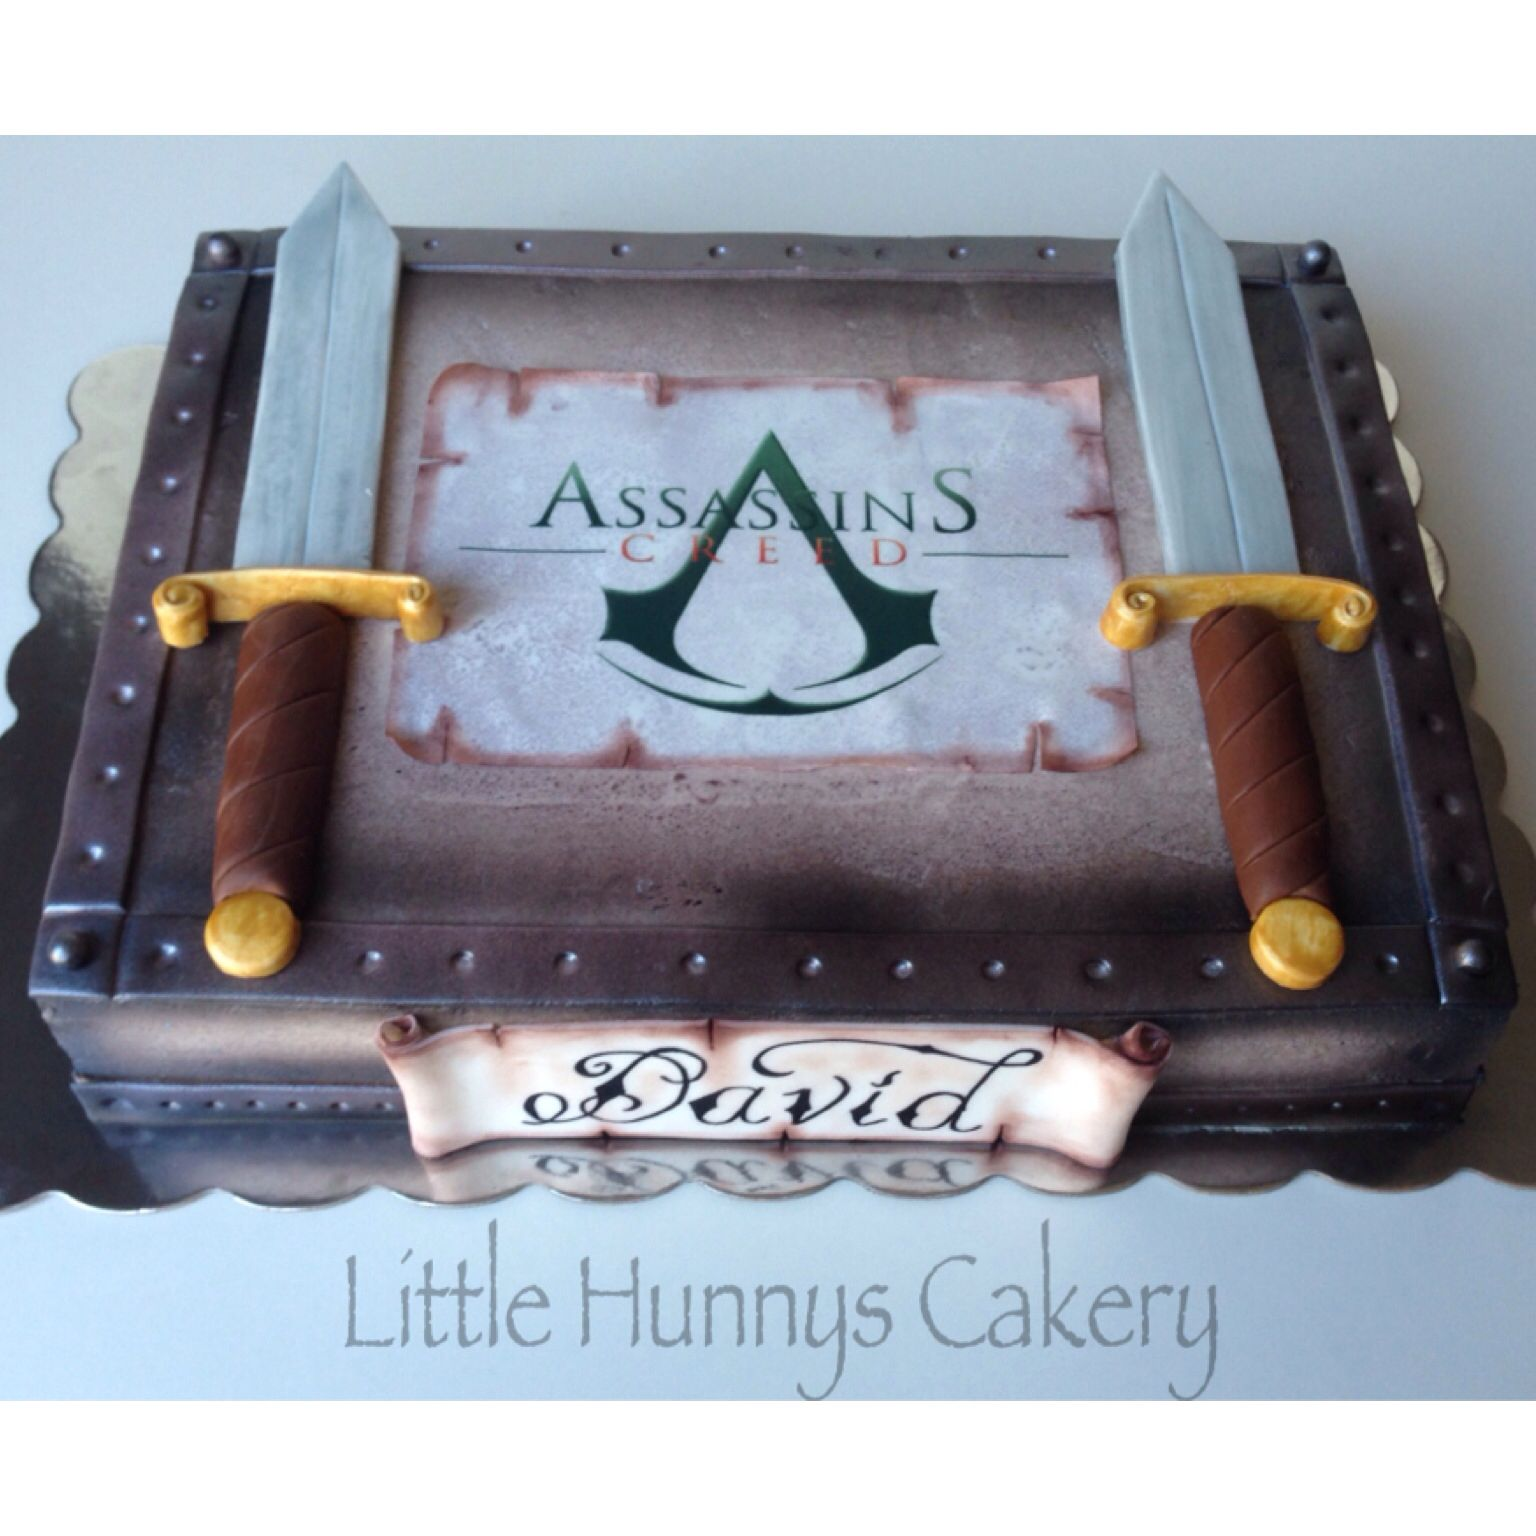 Cake Design Assassin S Creed : Assassins creed cake. All edible. CAKES by Little Hunnys ...